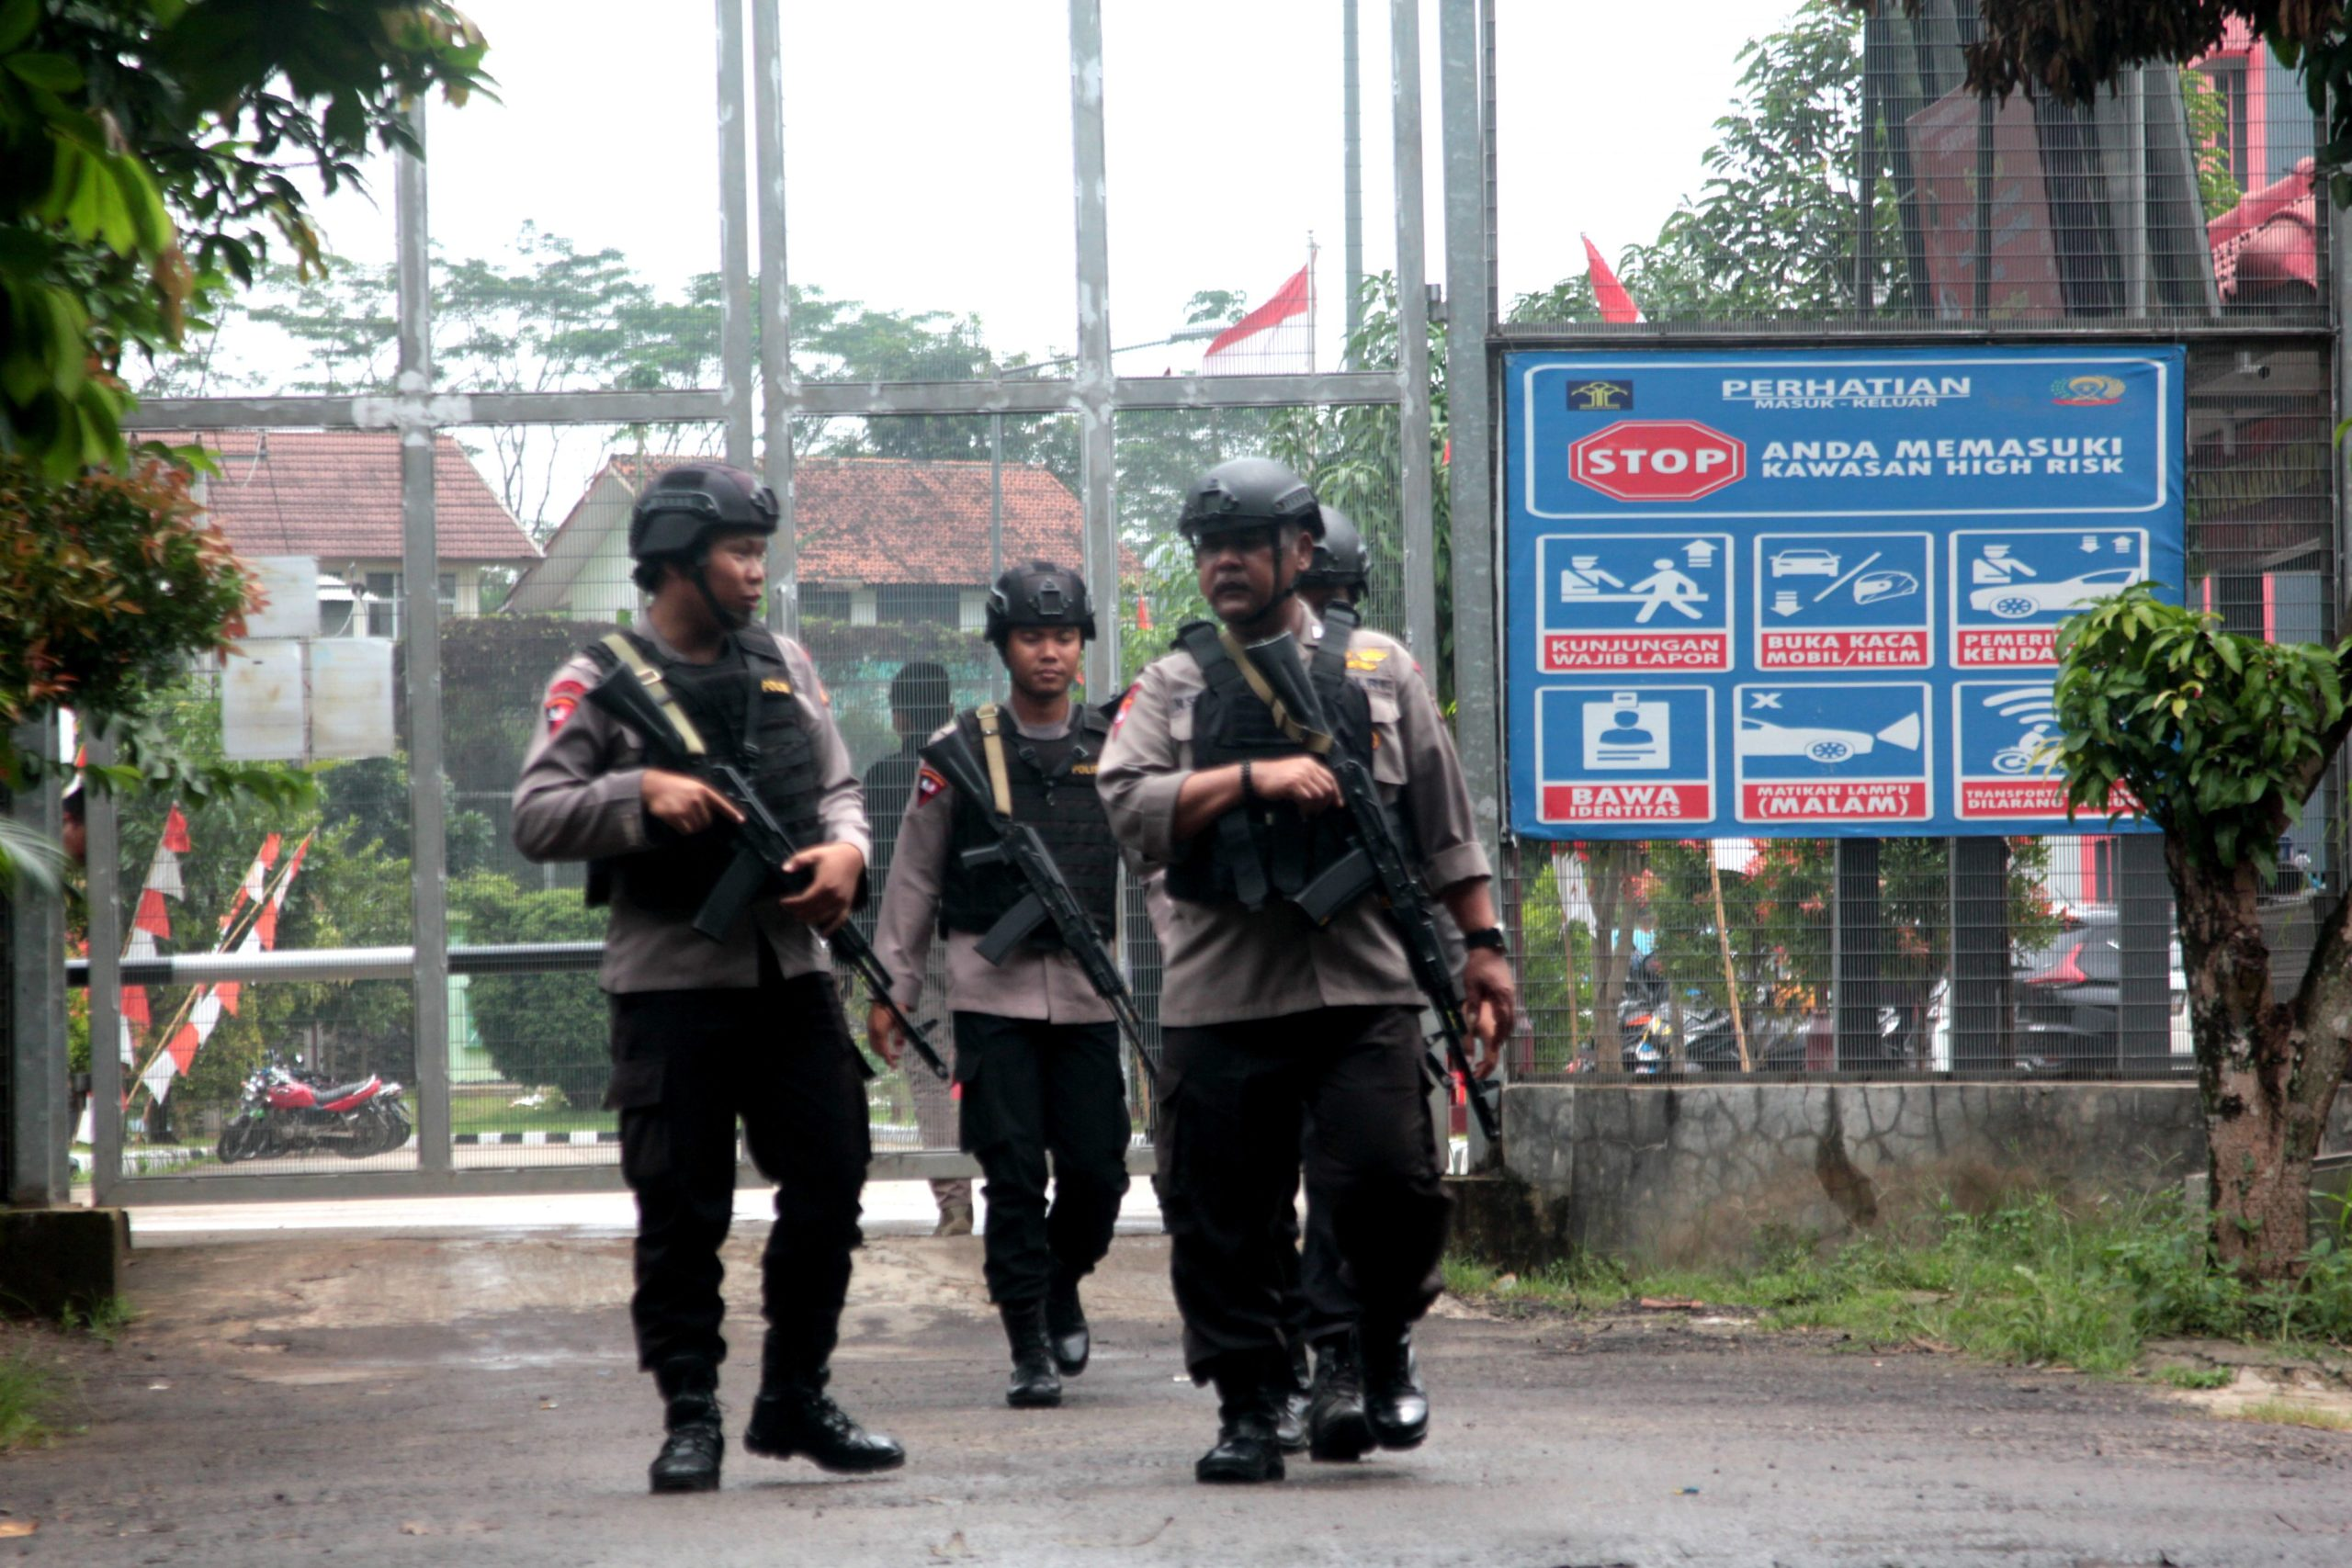 Indonesian security personnel patrol the perimeter of Gunung Sindur prison in Bogor on January 22, 2019, where radical cleric Abu Bakar Bashir, believed to have been a key figure in terror network Jemaah Islamiyah (JI) which was blamed for the 2002 Bali bombings, is jailed. (Photo credit should read TJAHYADI ERMAWAN/AFP via Getty Images)